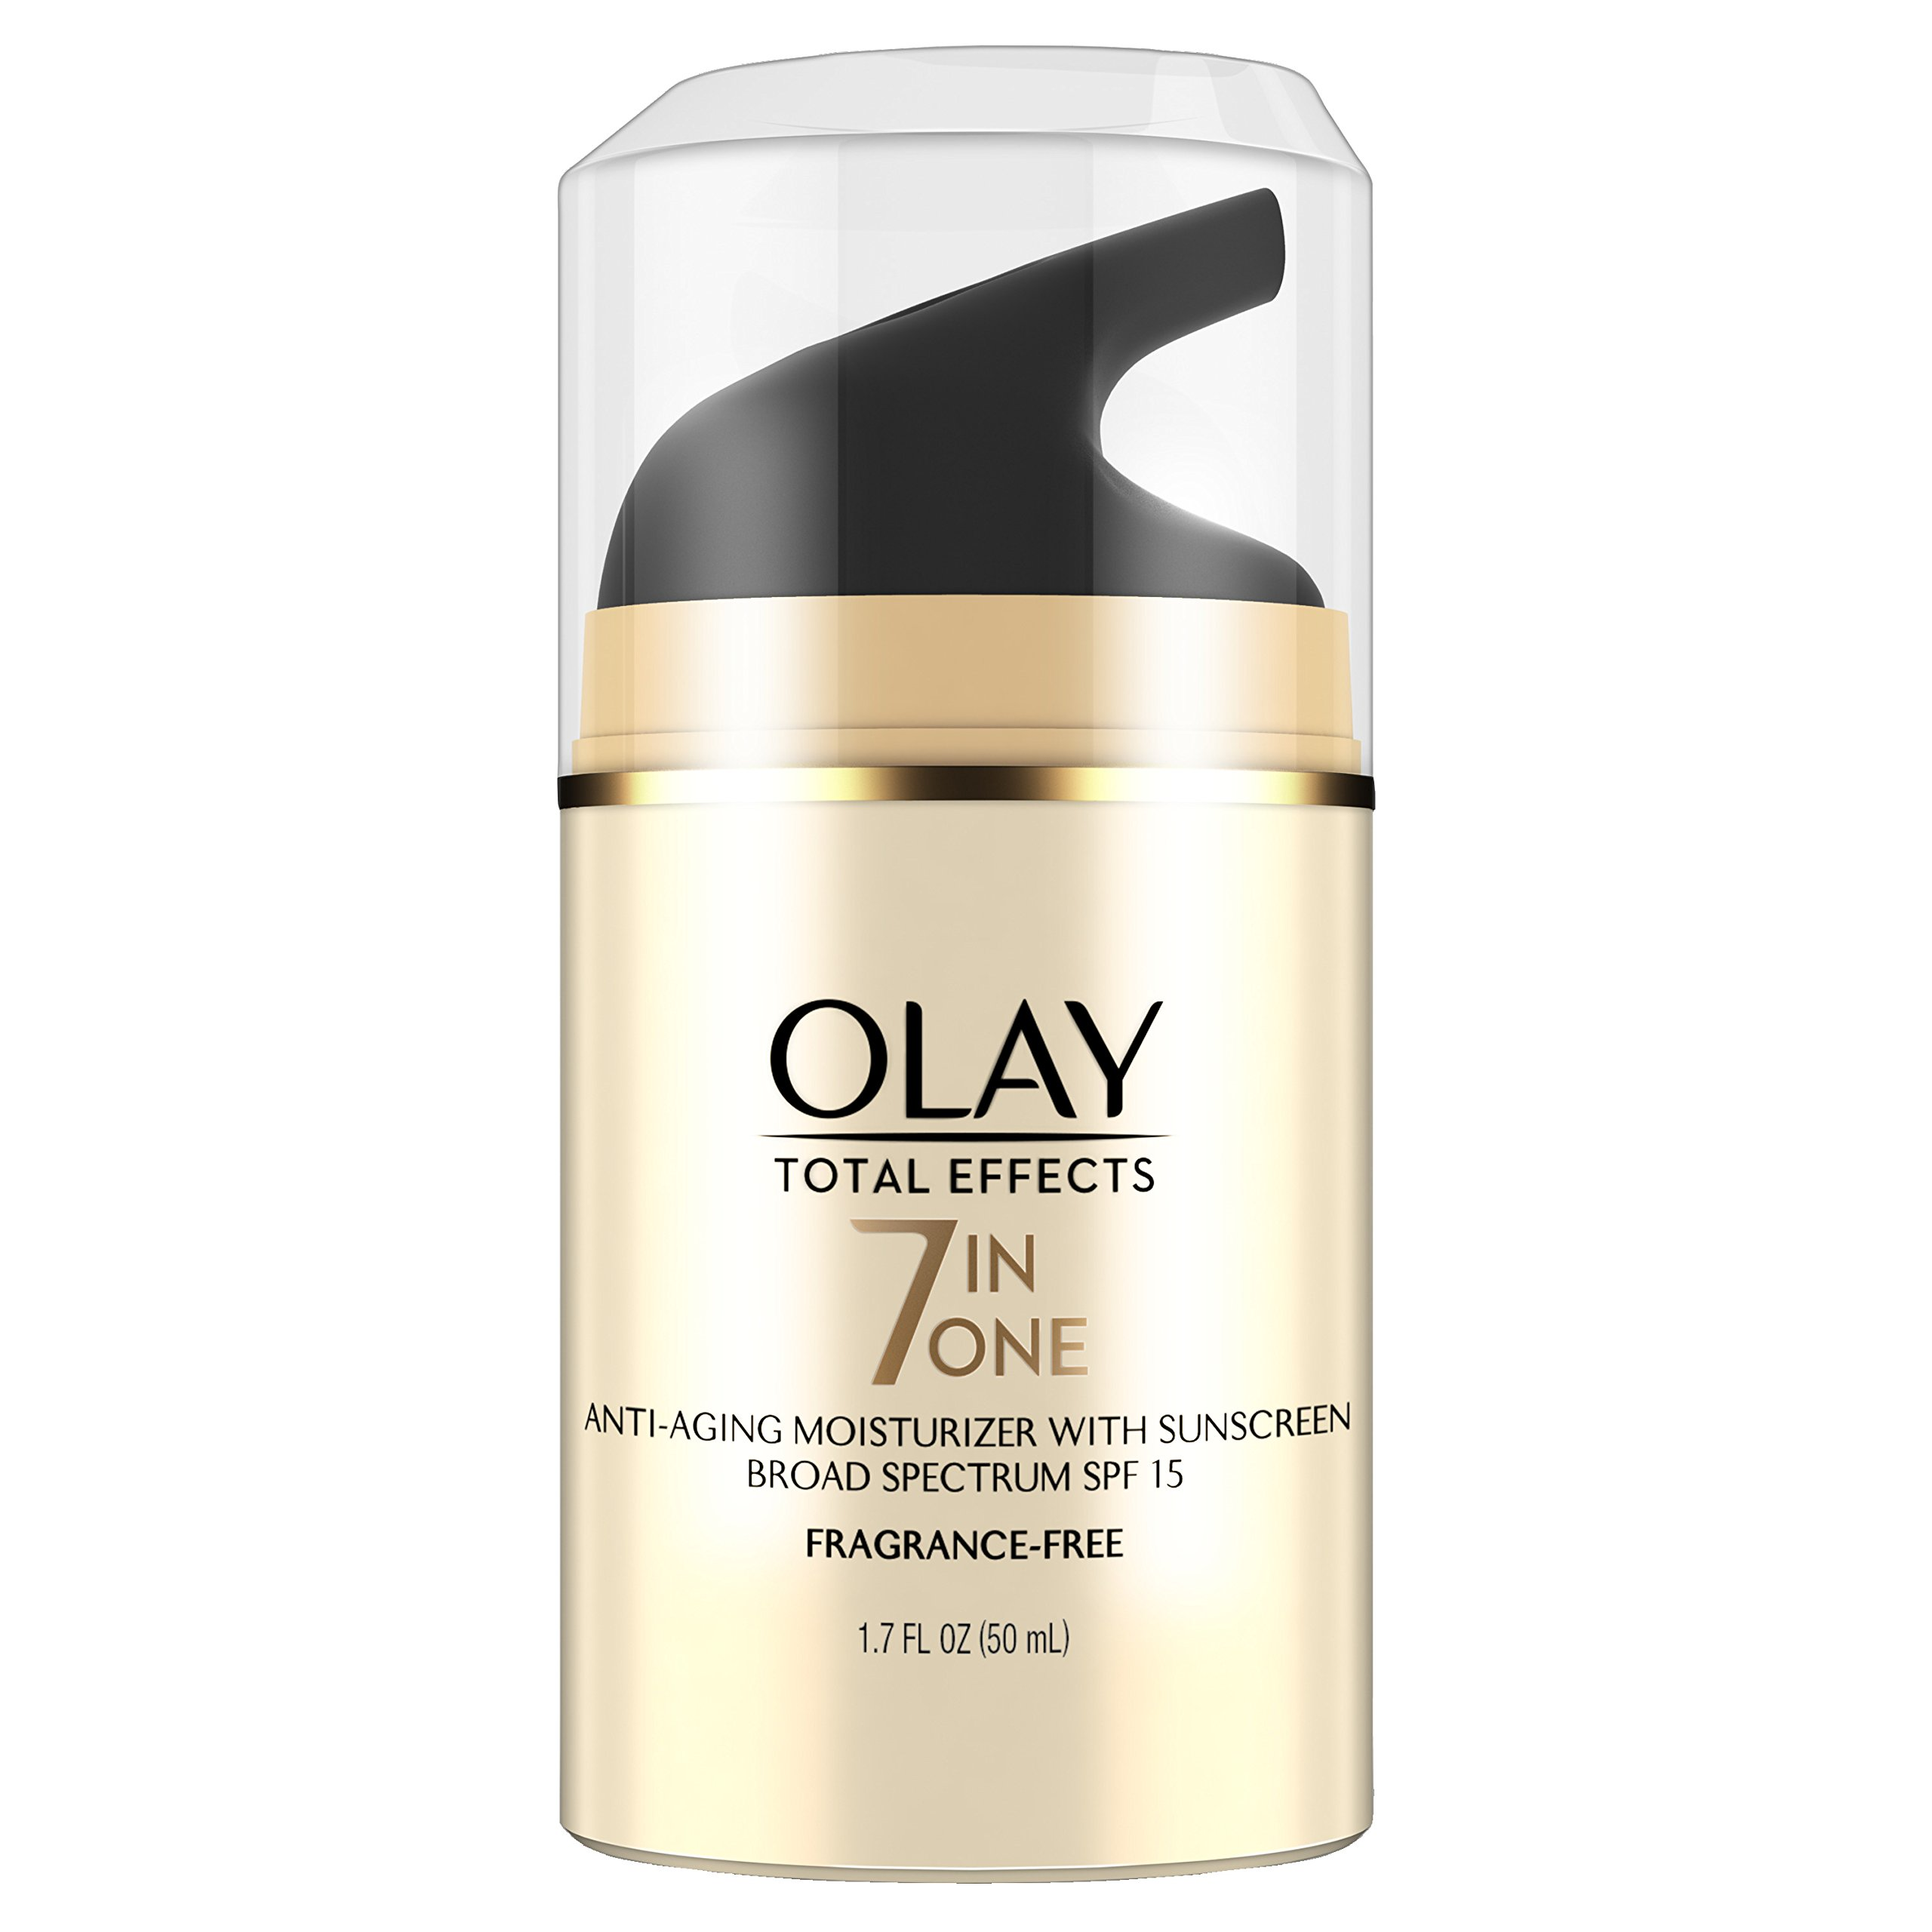 Olay Total Effects 7-in-1 Anti-Aging UV Moisturizer SPF 15, 1.7 Fl Oz by Olay